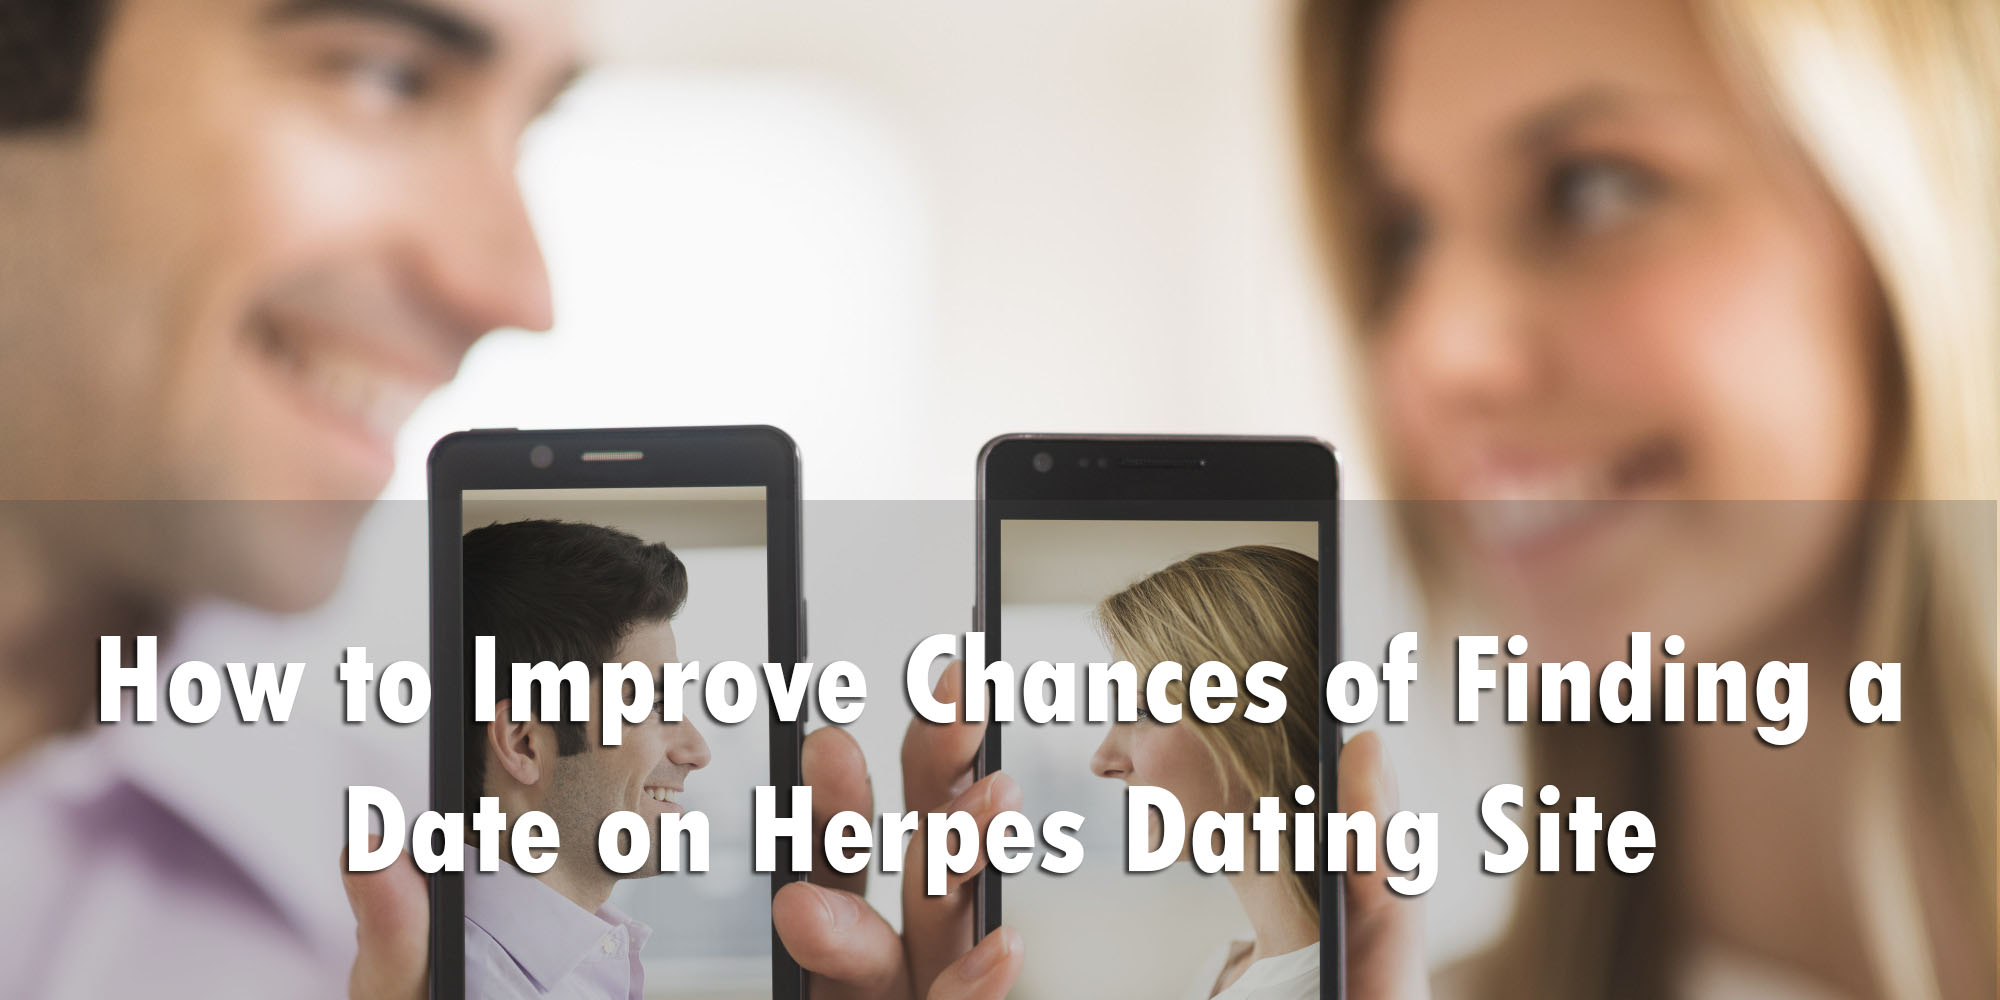 How to Improve Chances of Finding a Date on Herpes Dating Site